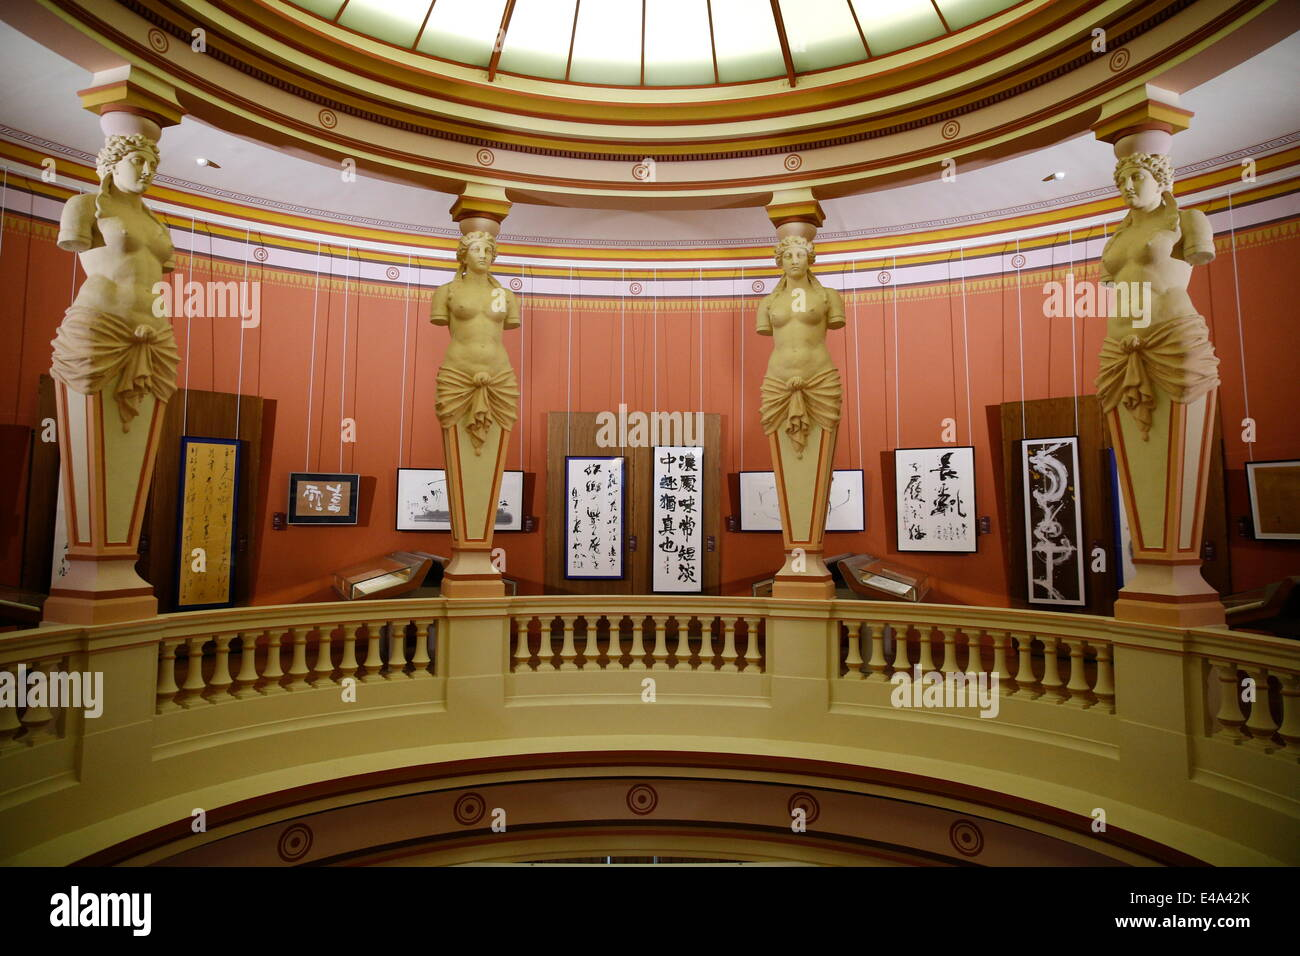 Library of the Musee Guimet. Museum of Asian Arts. Paris, France, Europe - Stock Image